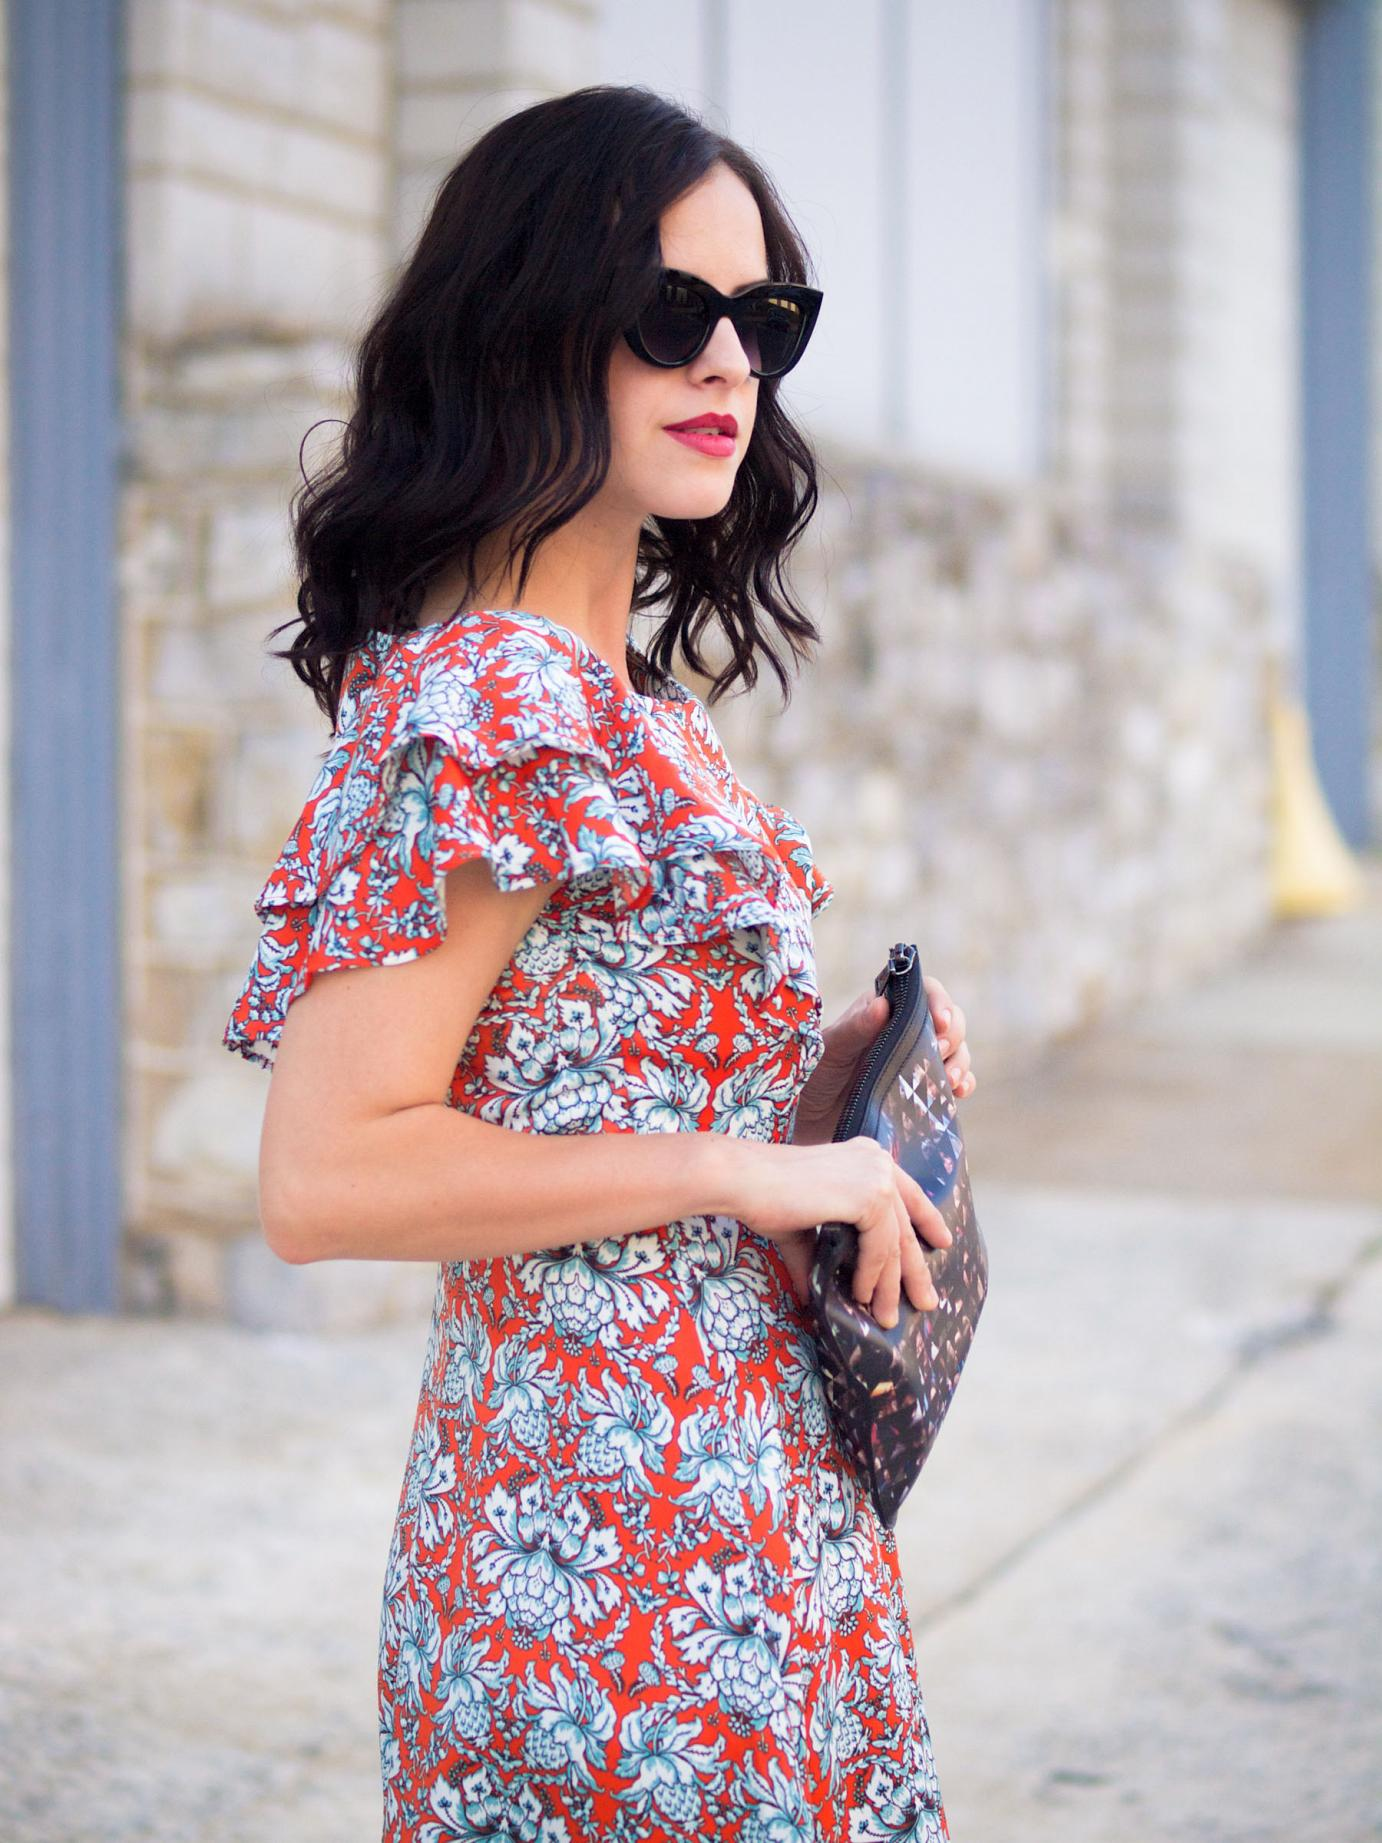 bittersweet colours, ruffles trend, printed dress, colors, prada sandals, asos sunglasses, proenza schouler, shabby apple, street style, summer dress,